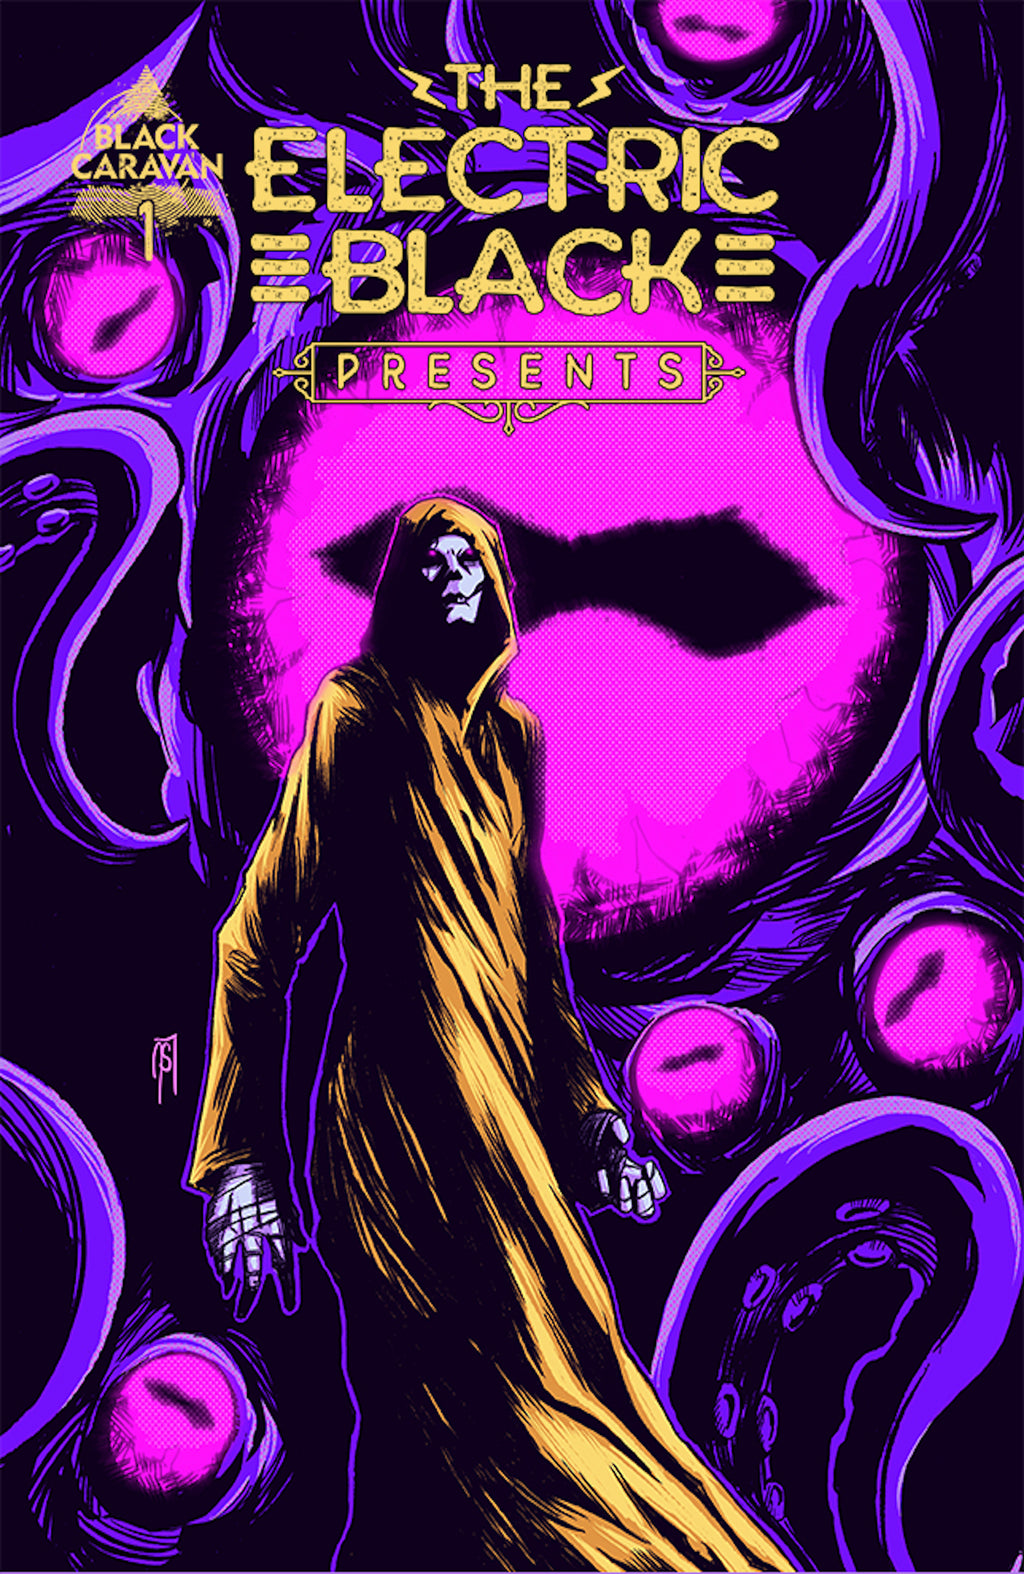 The Electric Black Presents #1